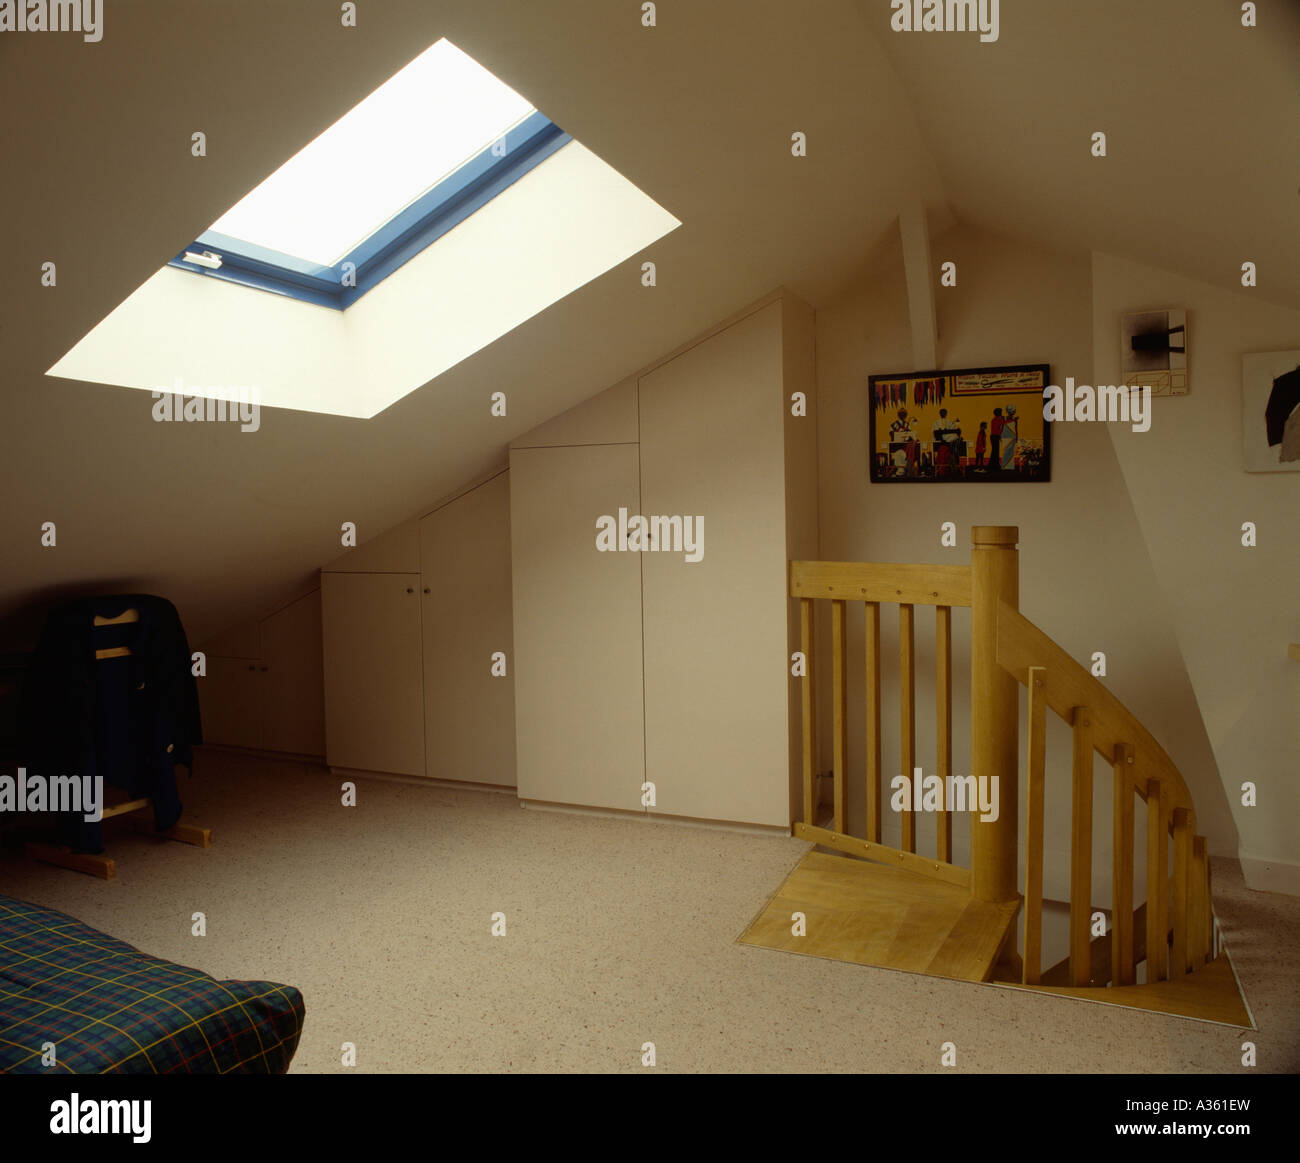 Cream Carpet In Sparsely Furnished Loft Conversion Bedroom With Wooden Banisters On Stairs And Small Skylight In Roof Stock Photo Alamy